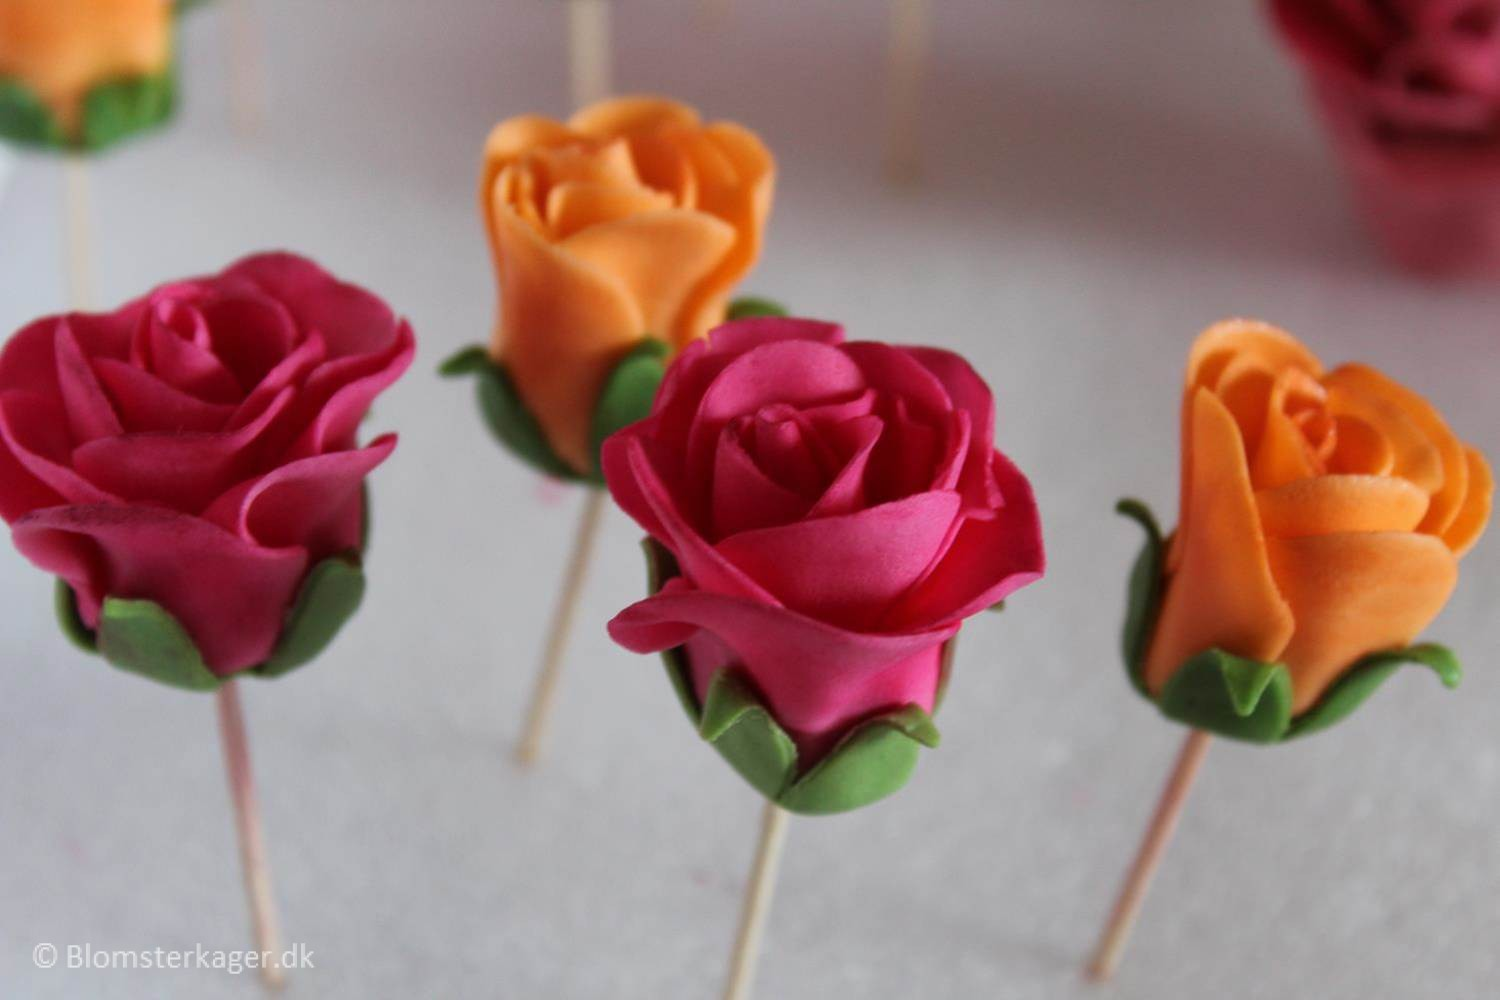 How To Make A Rose Calyx From Fondant Or Gum Paste Karen